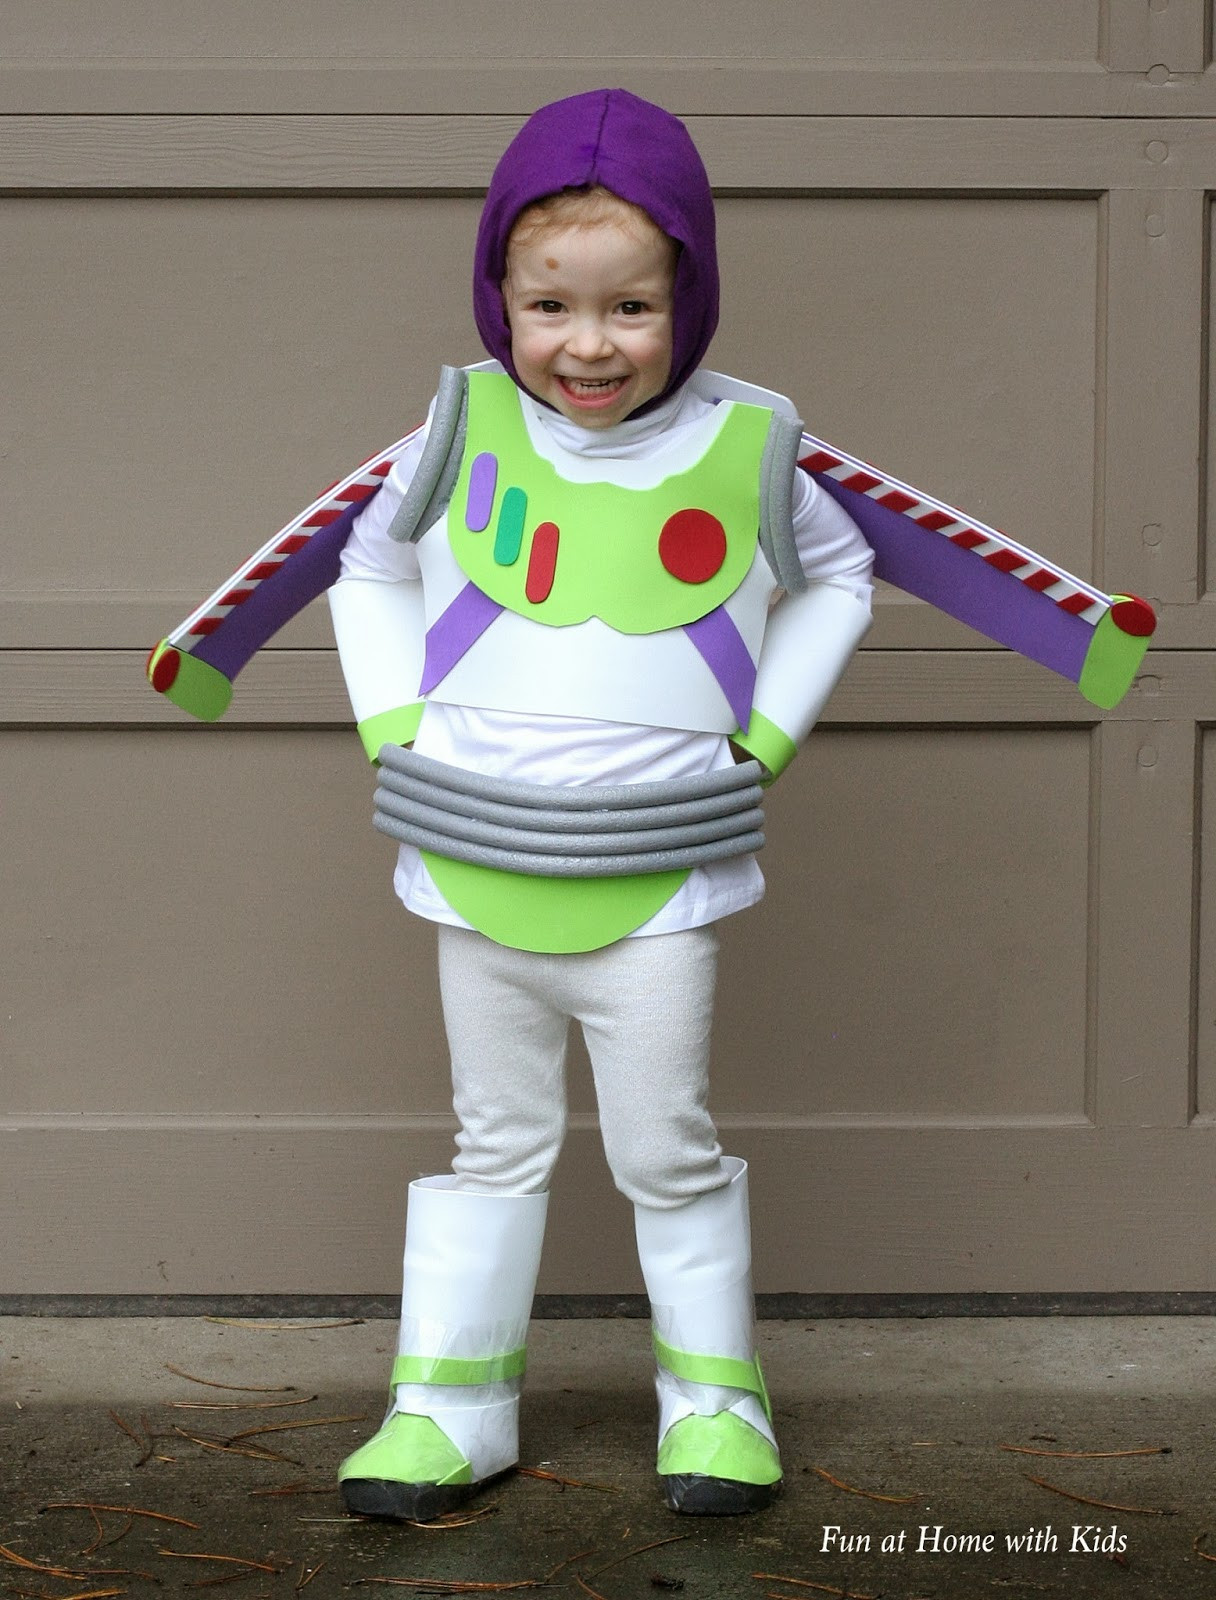 Best ideas about Kids DIY Costume . Save or Pin DIY Kids Buzz Lightyear No Sew Halloween Costume Now.